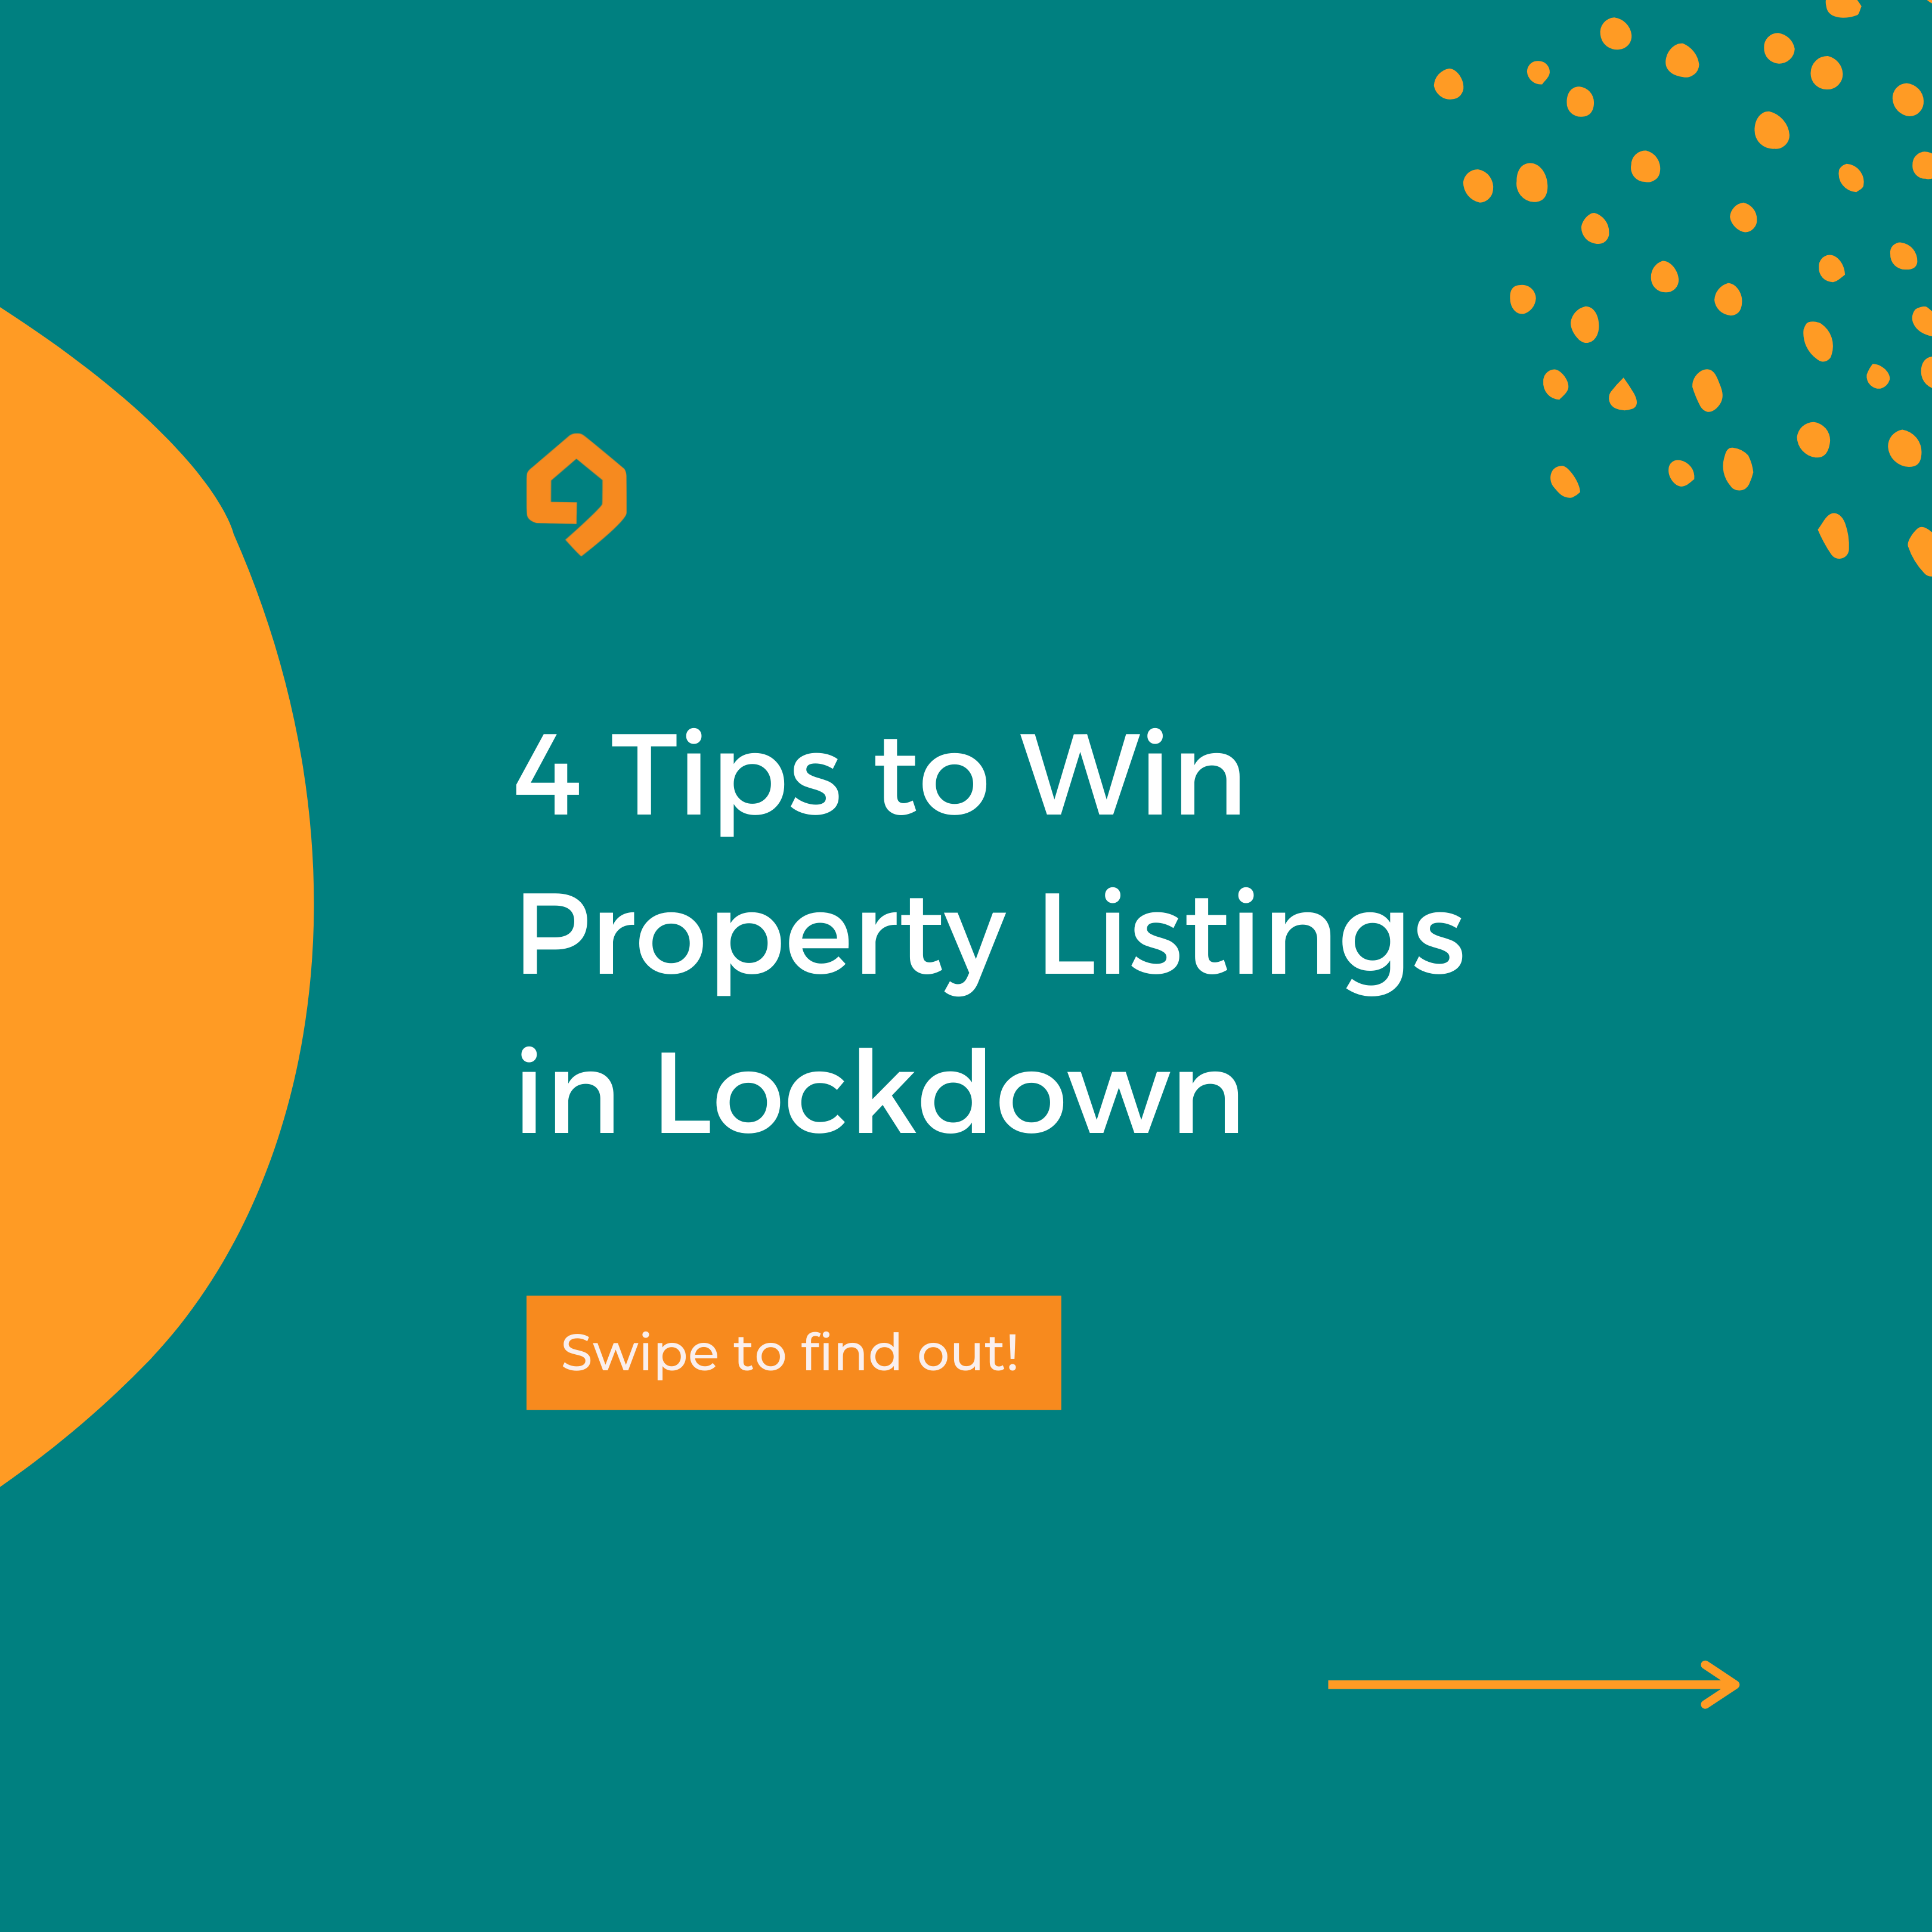 4 Tips to Win Property Listings in Lockdown